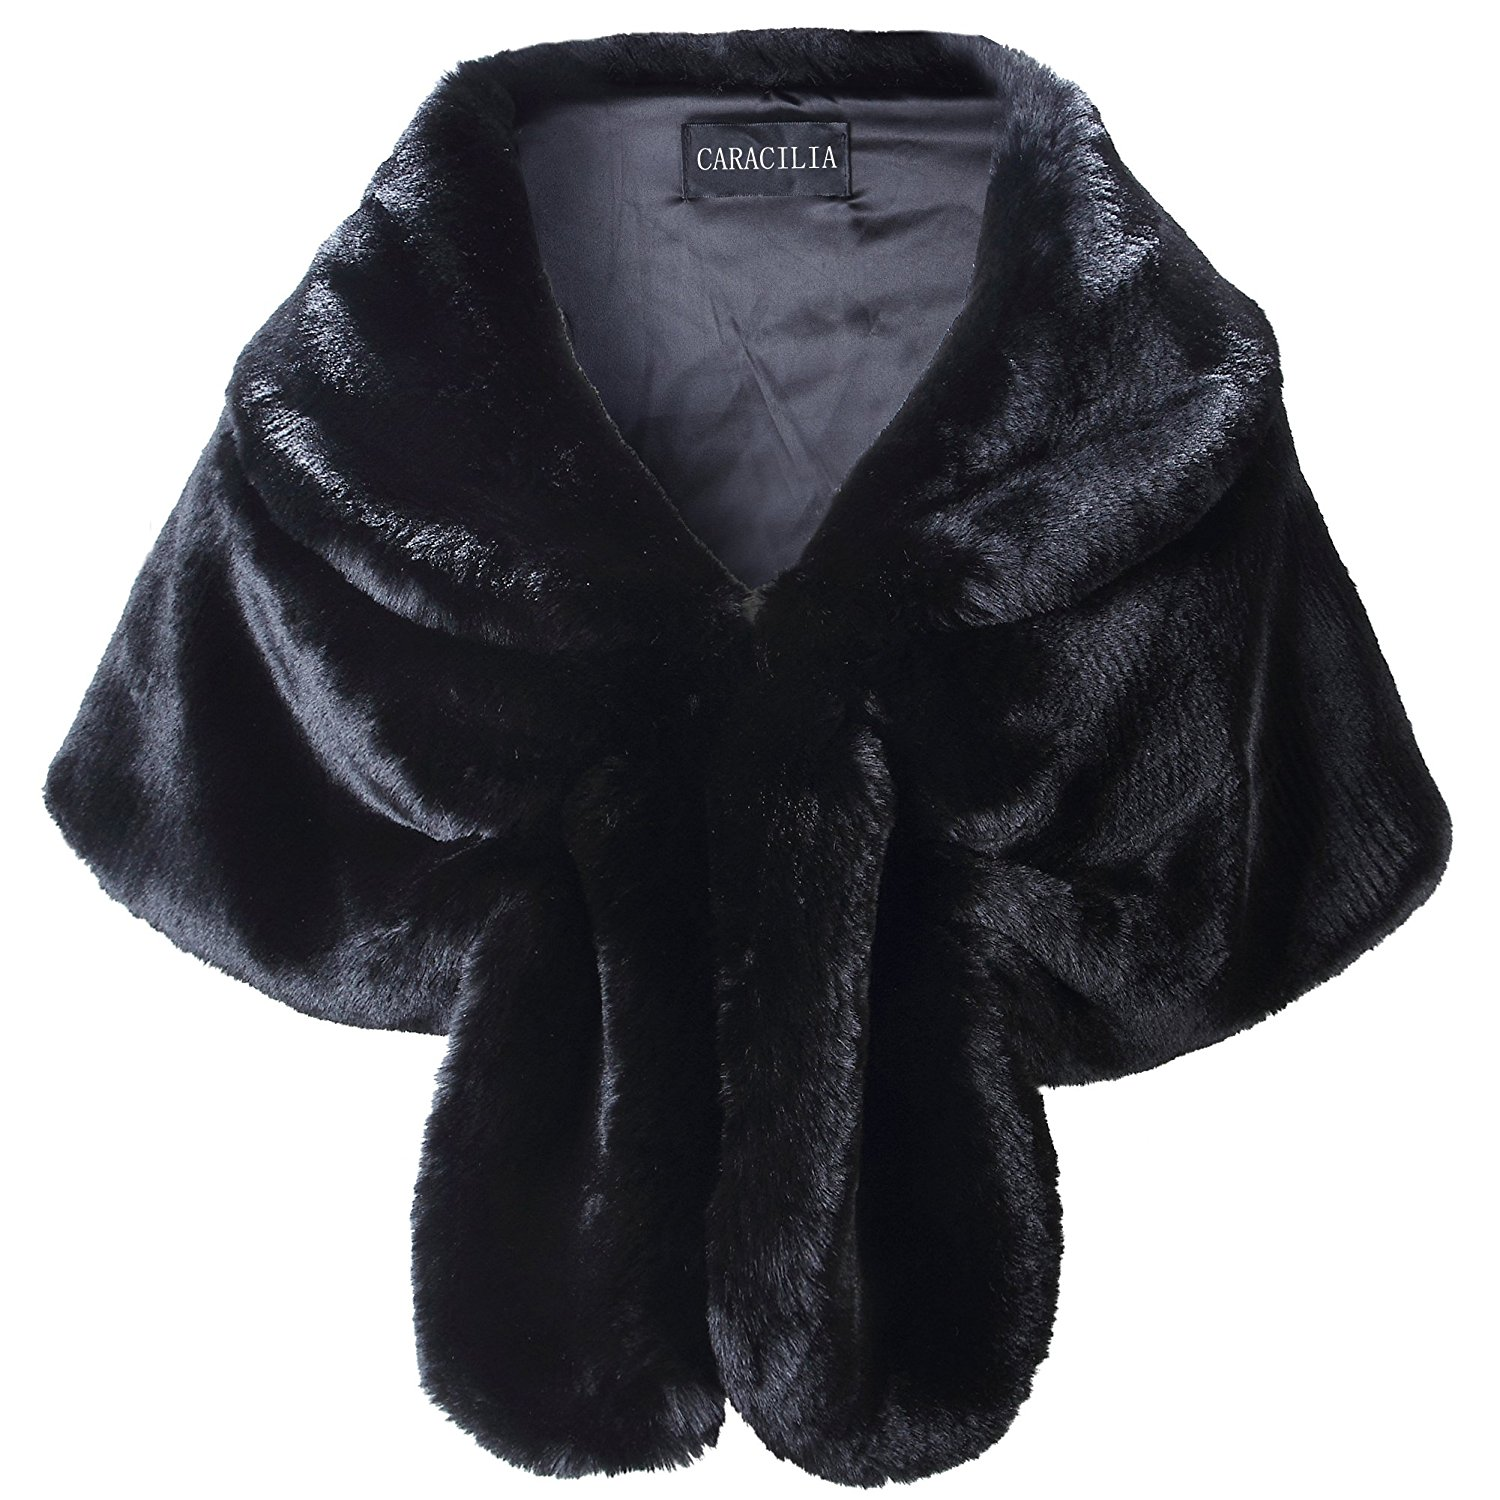 Faux Fur Wrap - For your first premiere.